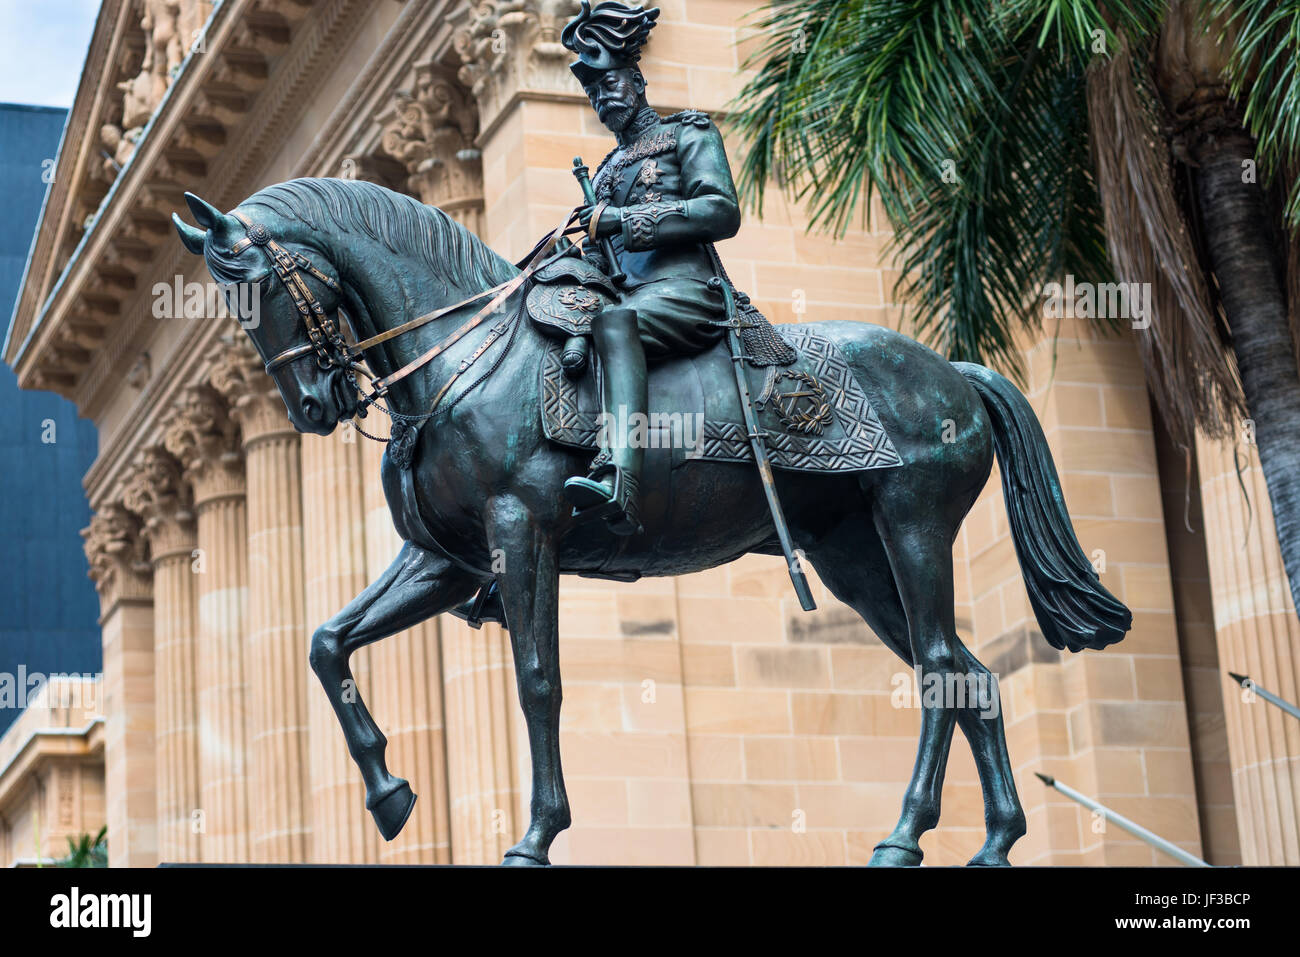 Statue of King George V in front of City Hall, King George Square, Brisbane, Australia. Stock Photo